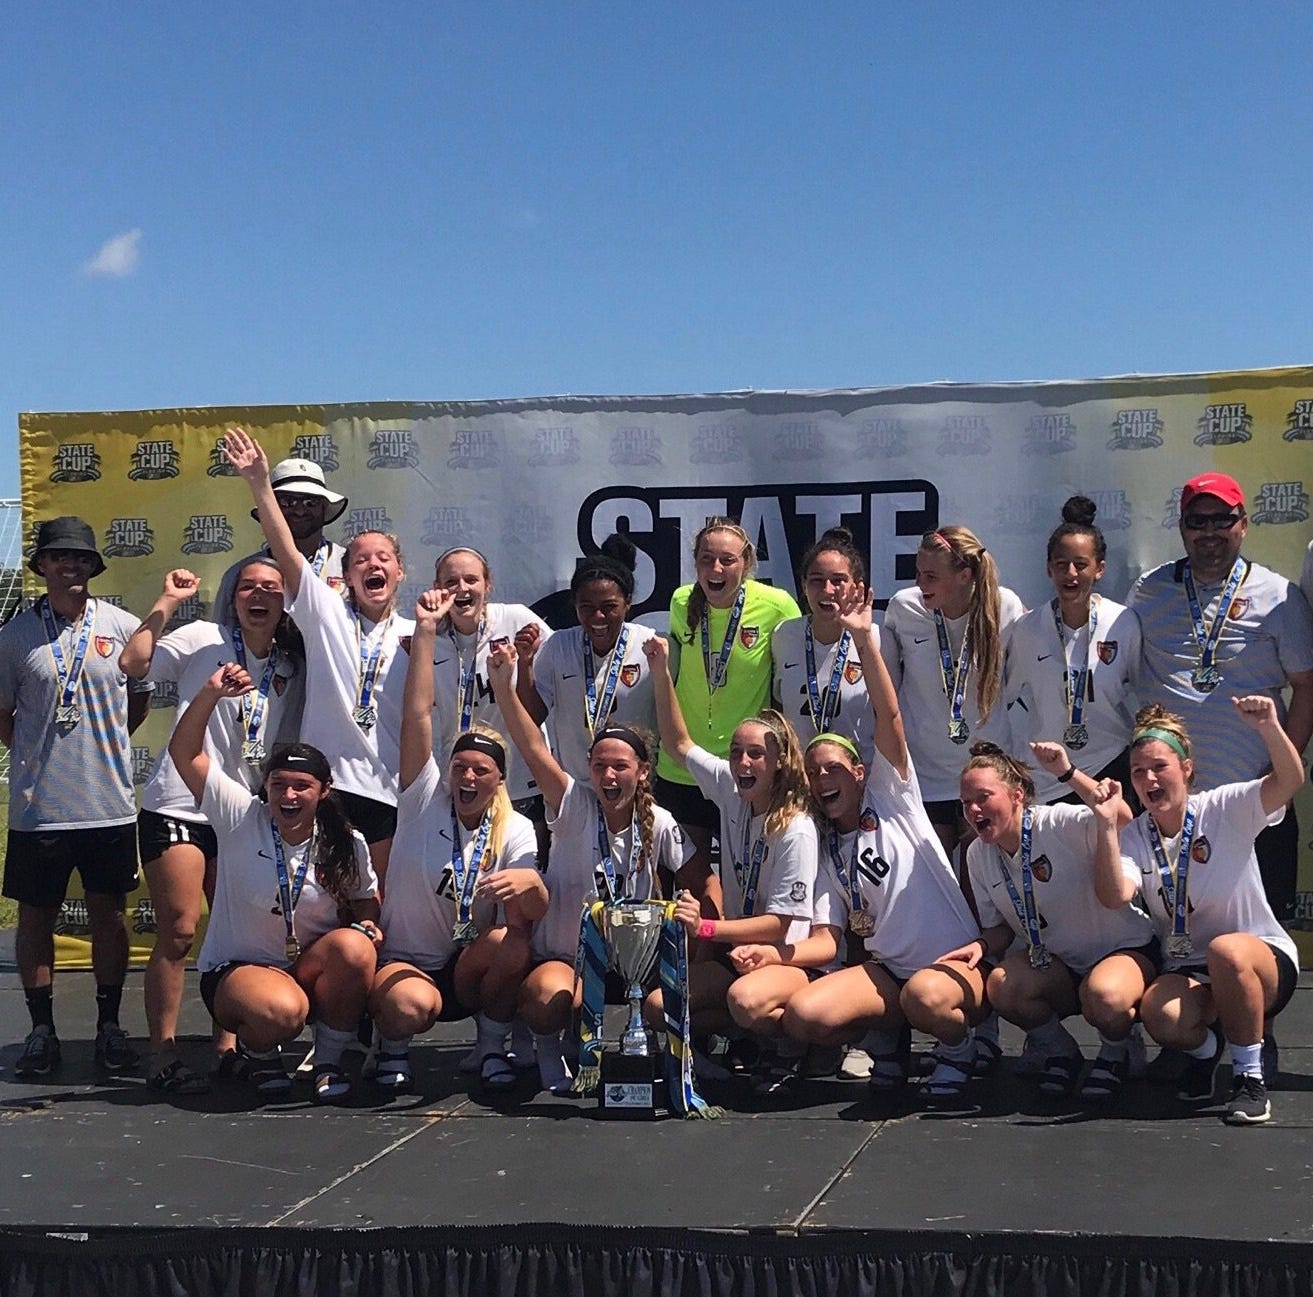 Gulf Coast Texans 00/01 team takes 2019 FYSA State Cup